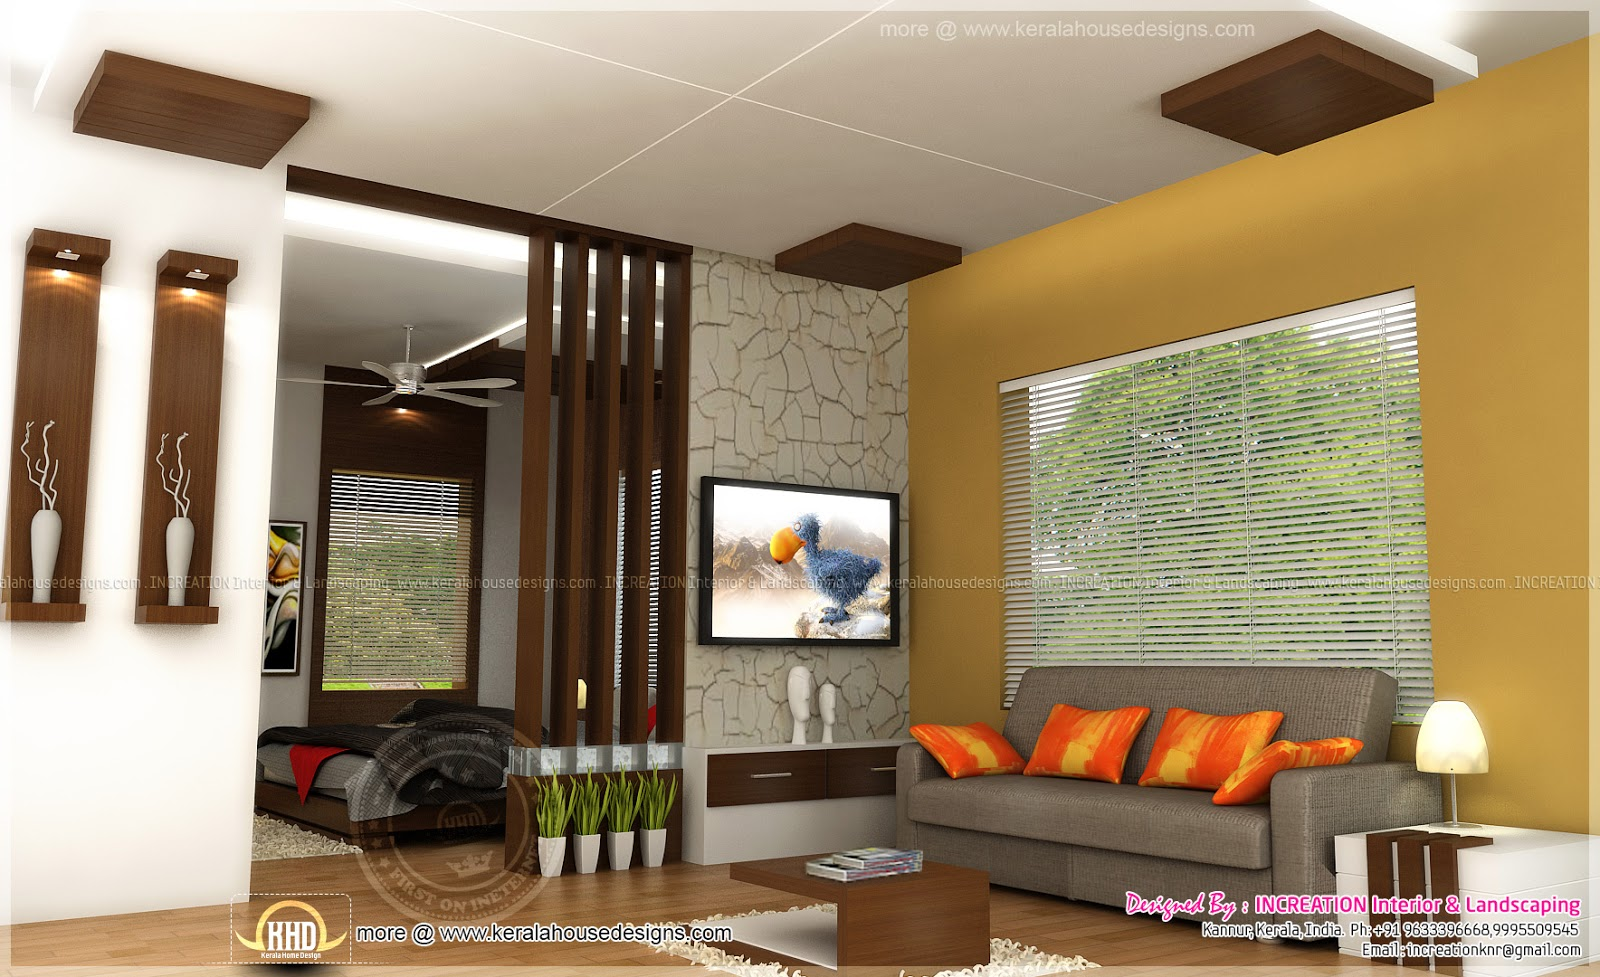 Interior designs from kannur kerala kerala home design for Interior design